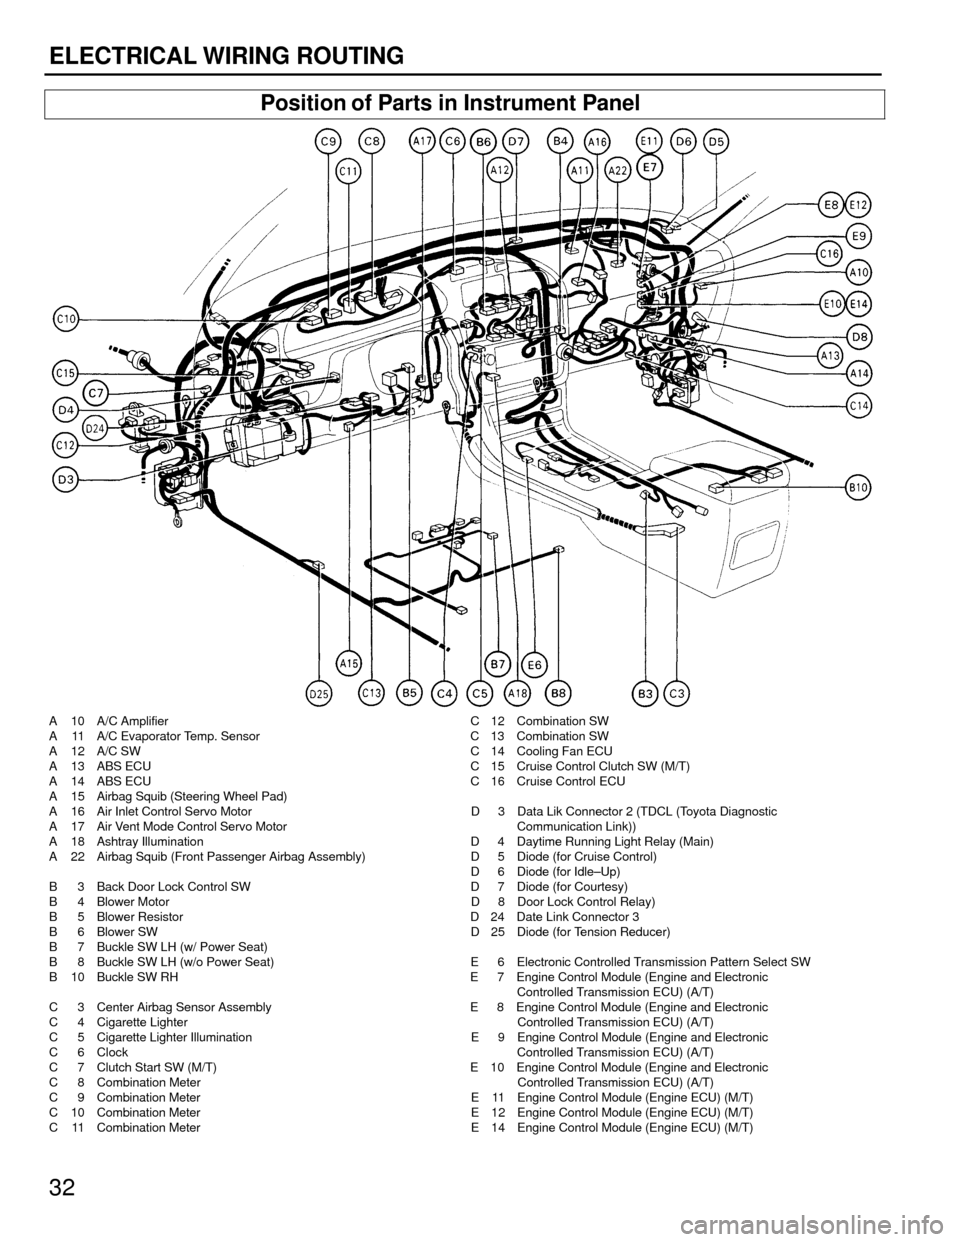 Abs ecu wiring diagram